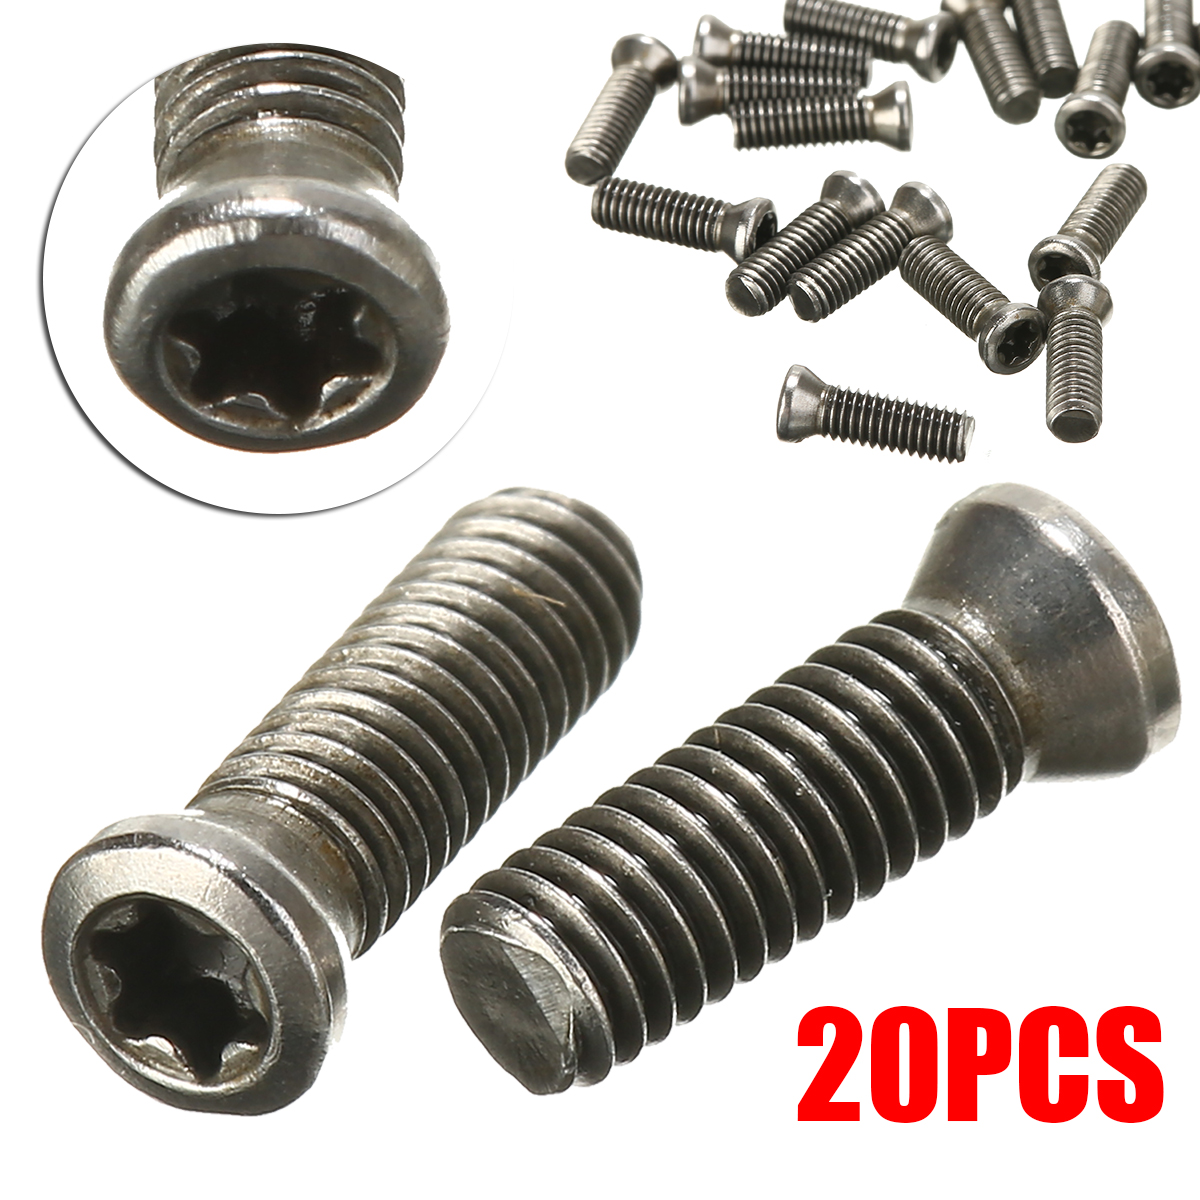 20Pcs <font><b>M3x10mm</b></font> CNC Insert Torx Screw For Replaces Carbide Inserts CNC Lathe Tool Blade Cutter Tool image